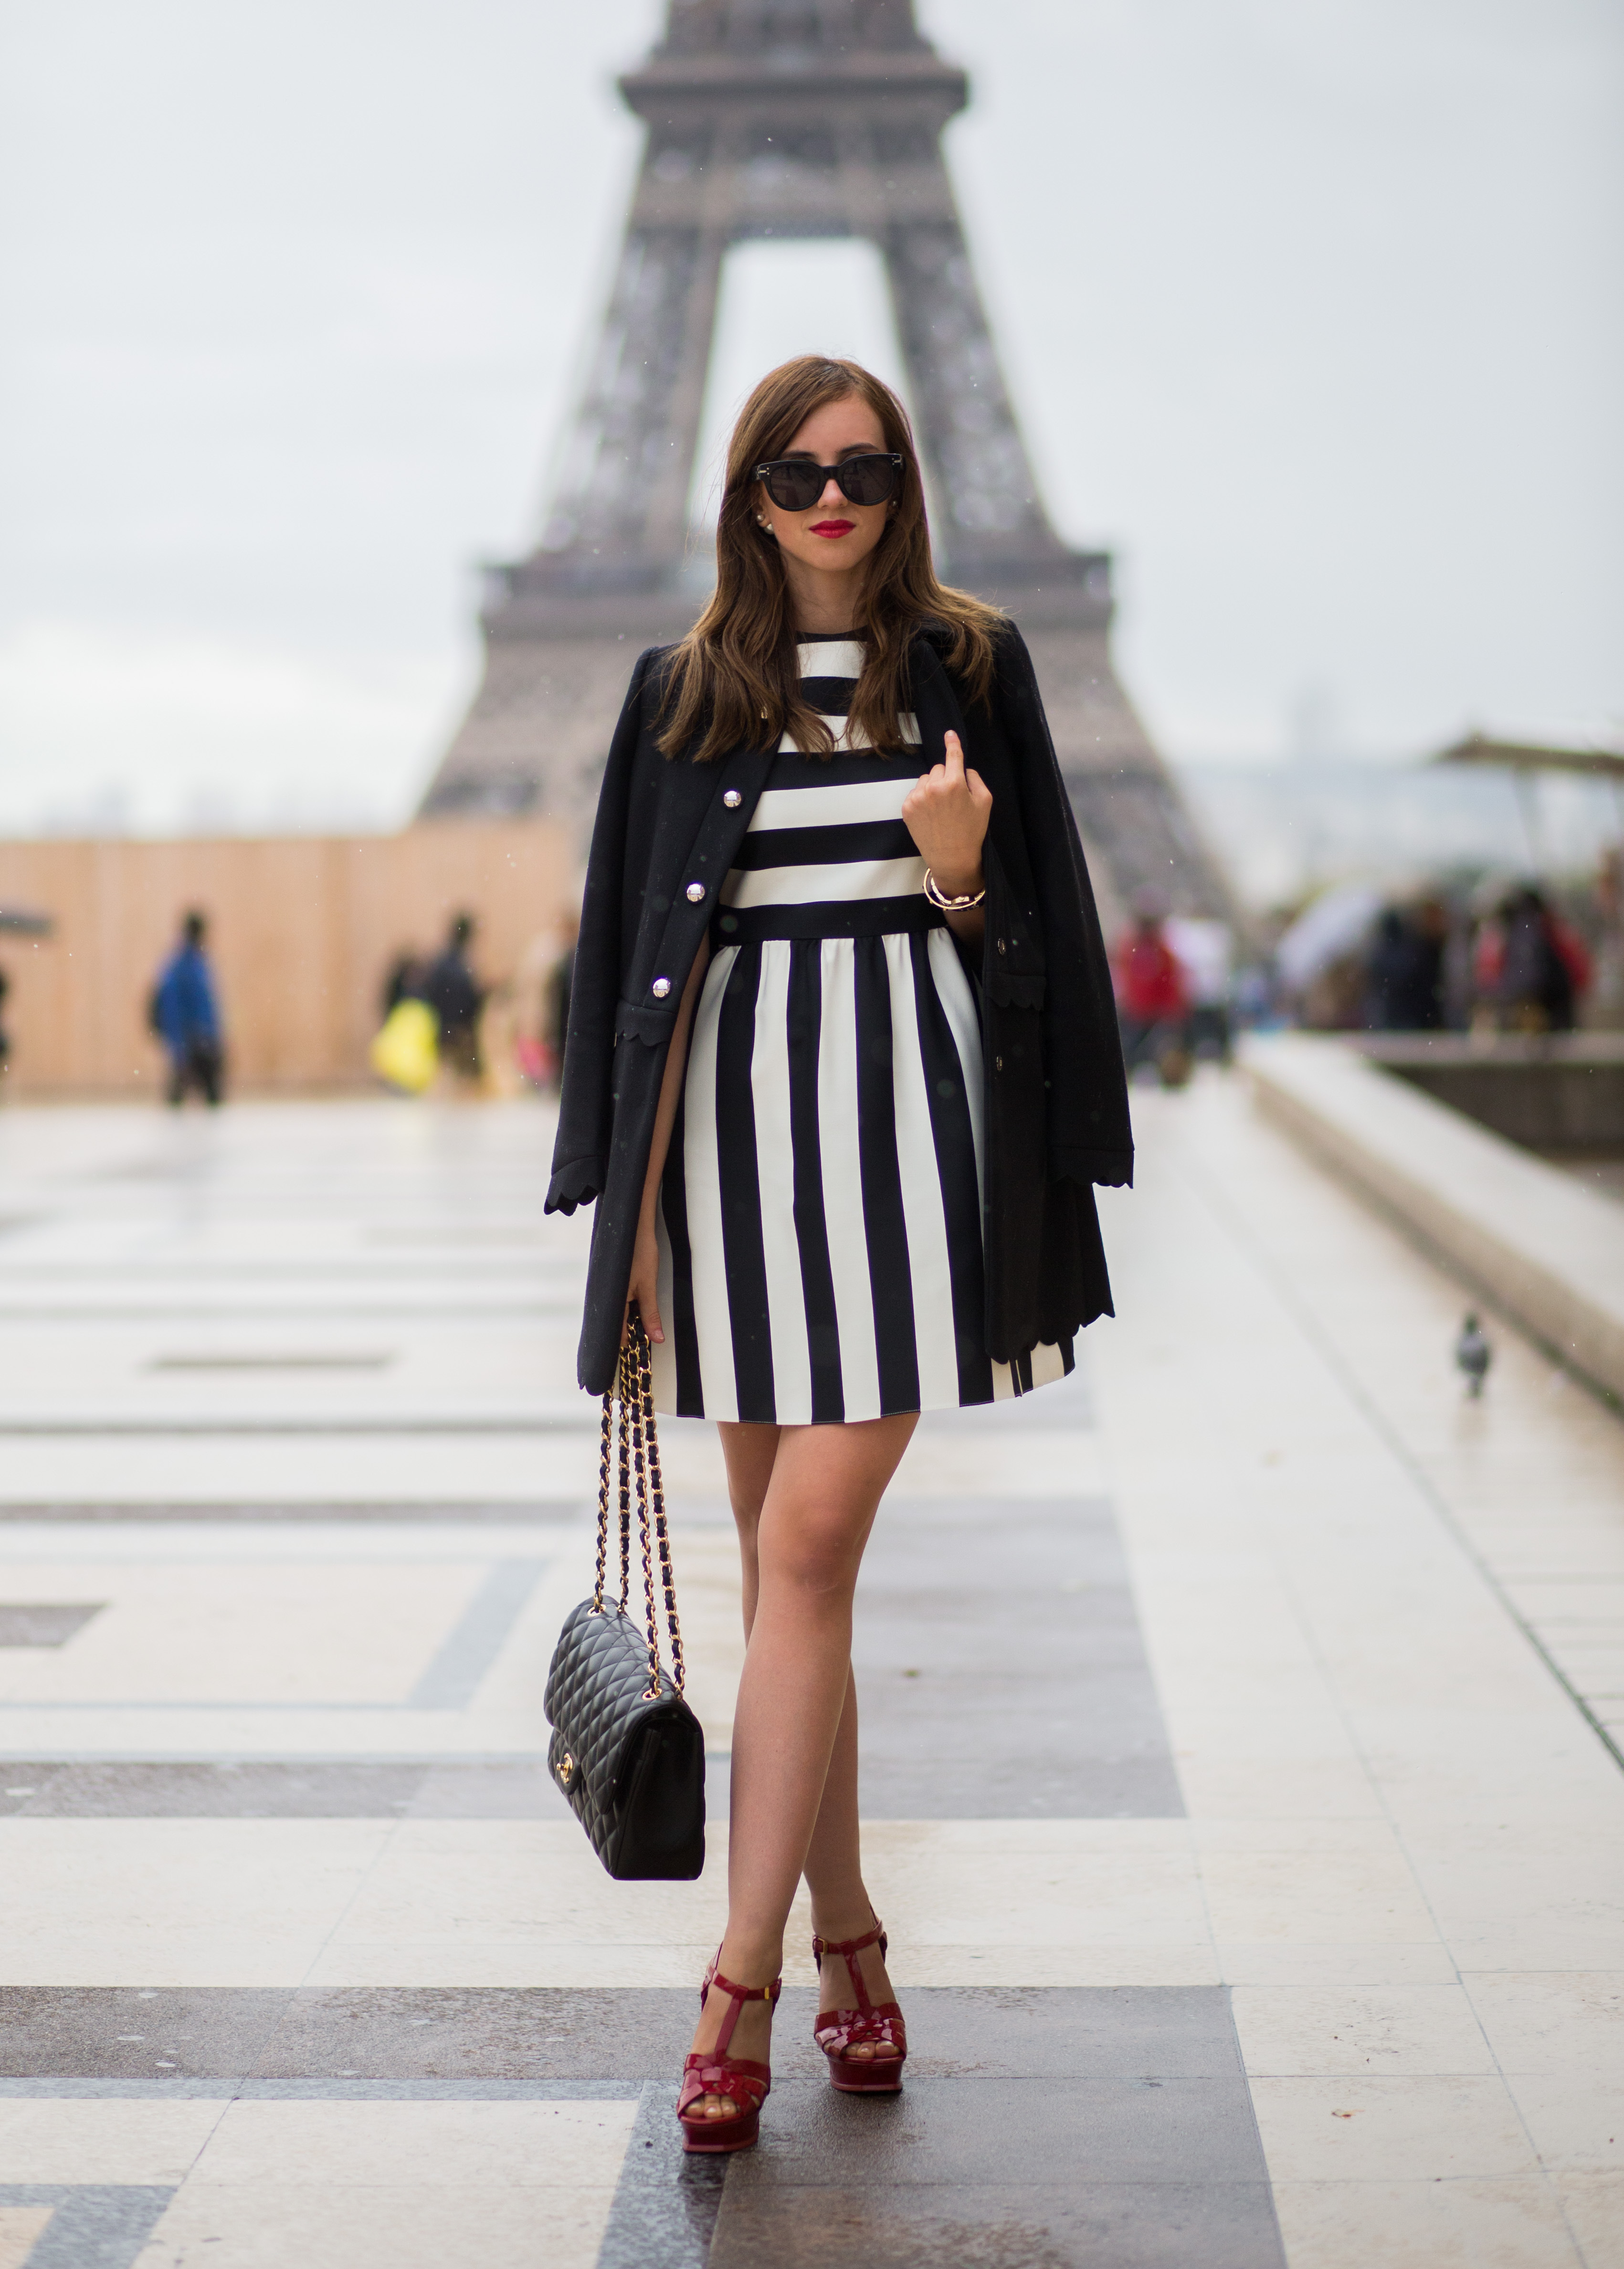 Barbora Ondrackova rocks the vertical stripe trend in this statement mini dress. Dress: Valentino, Heels: Saint Laurent.